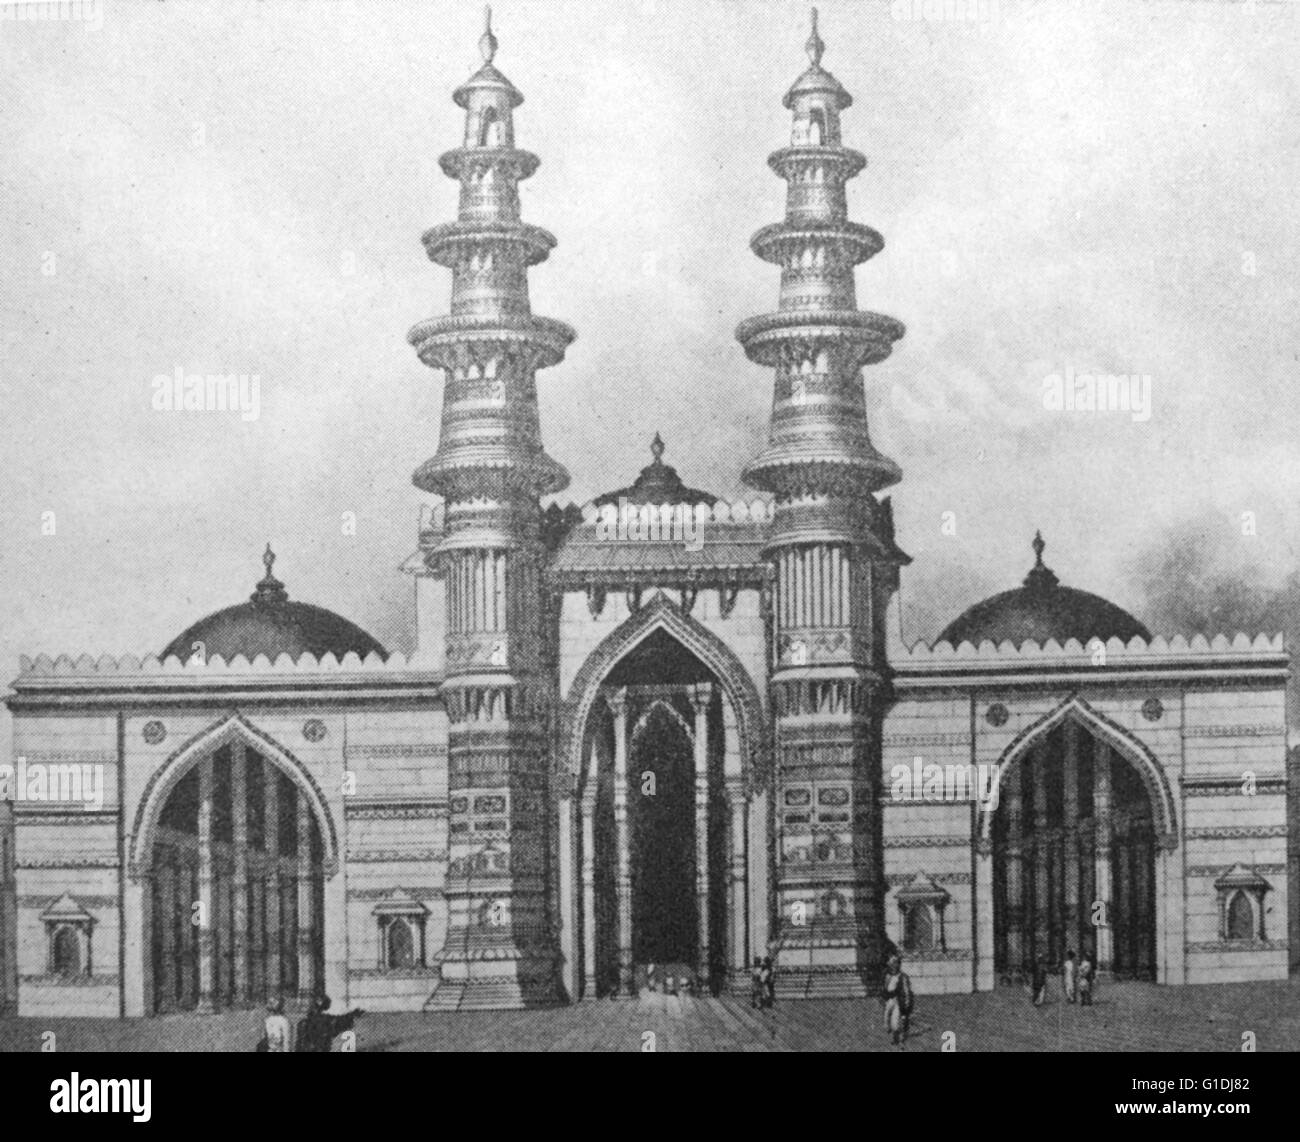 Ahmed Shah's Mosque, also known as Shahi Jam-e-Masjid, erected by the founder of Ahmedabad, Ahmed Shah I in - Stock Image